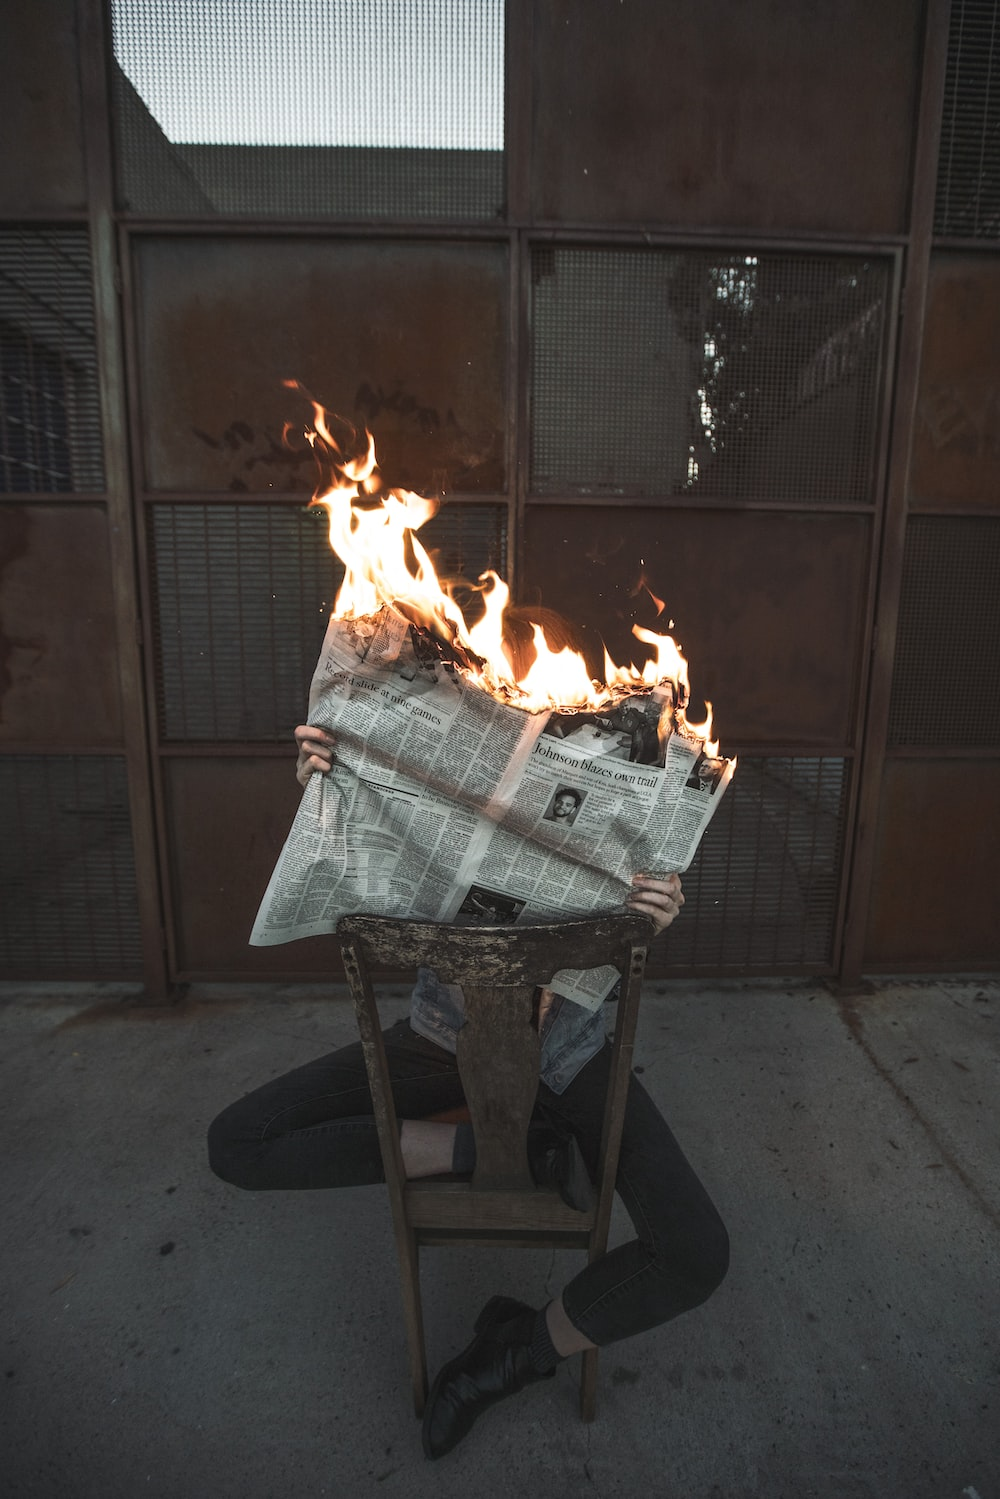 person holding burning newspaper while sitting on wooden chair